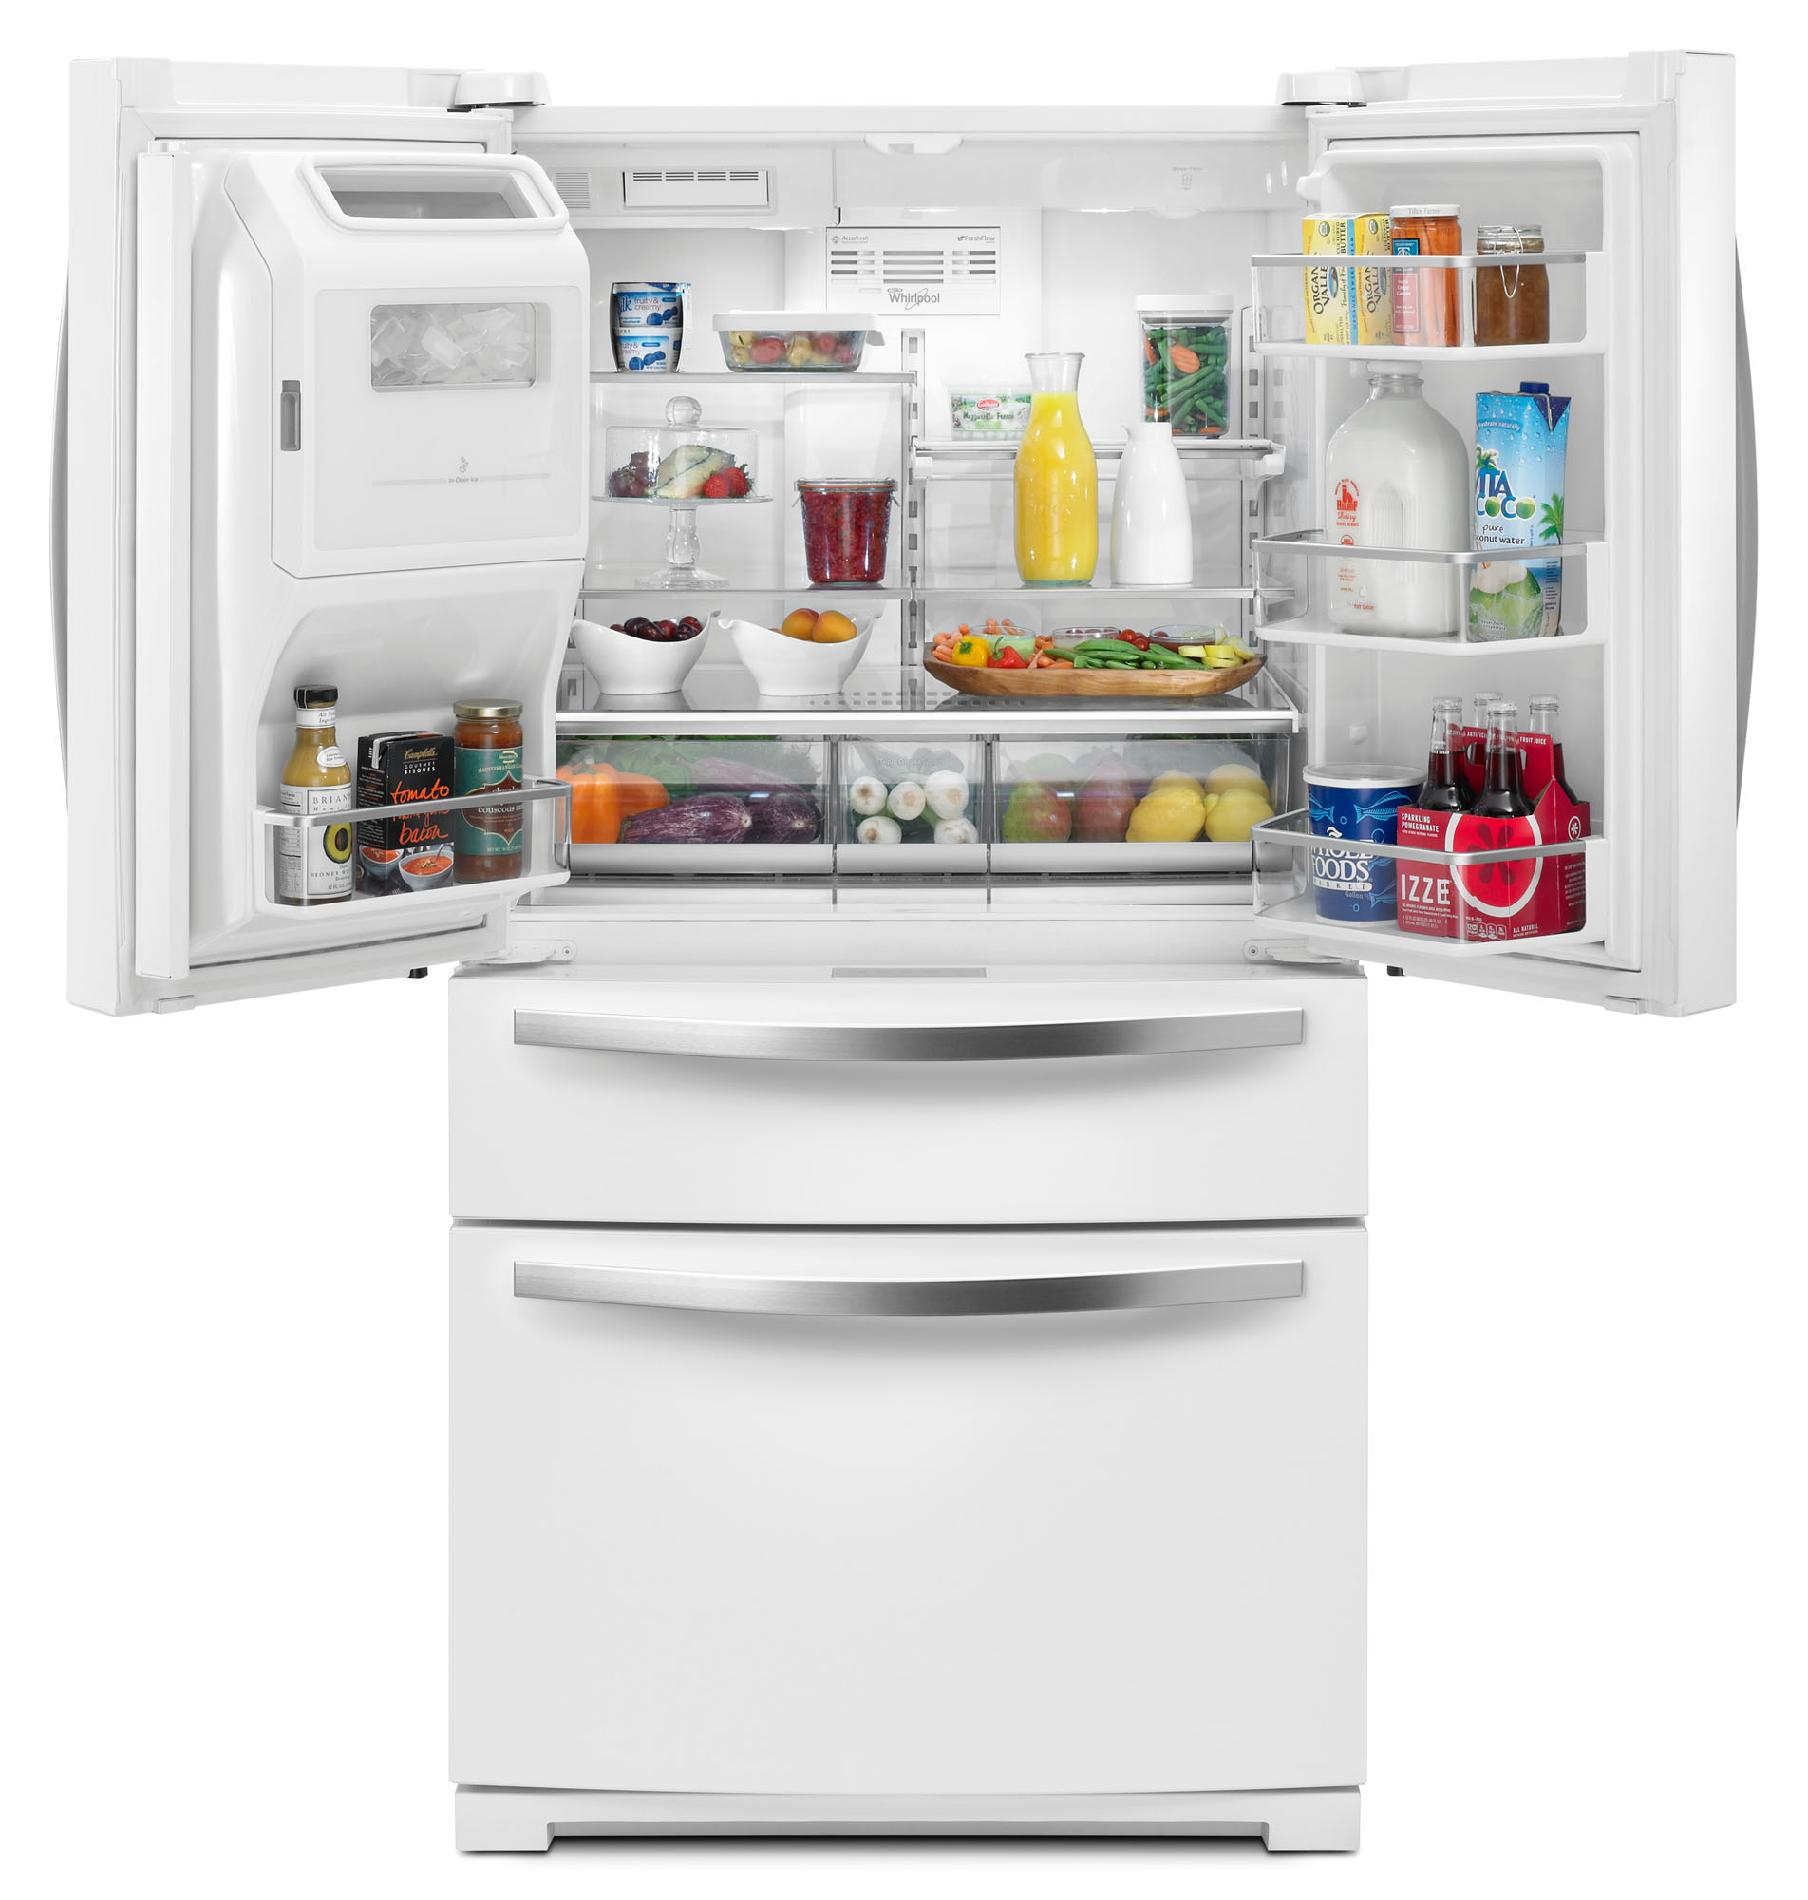 Whirlpool 28.1 cu. ft. French Door Refrigerator w/ Most Flexible Storage - White Ice